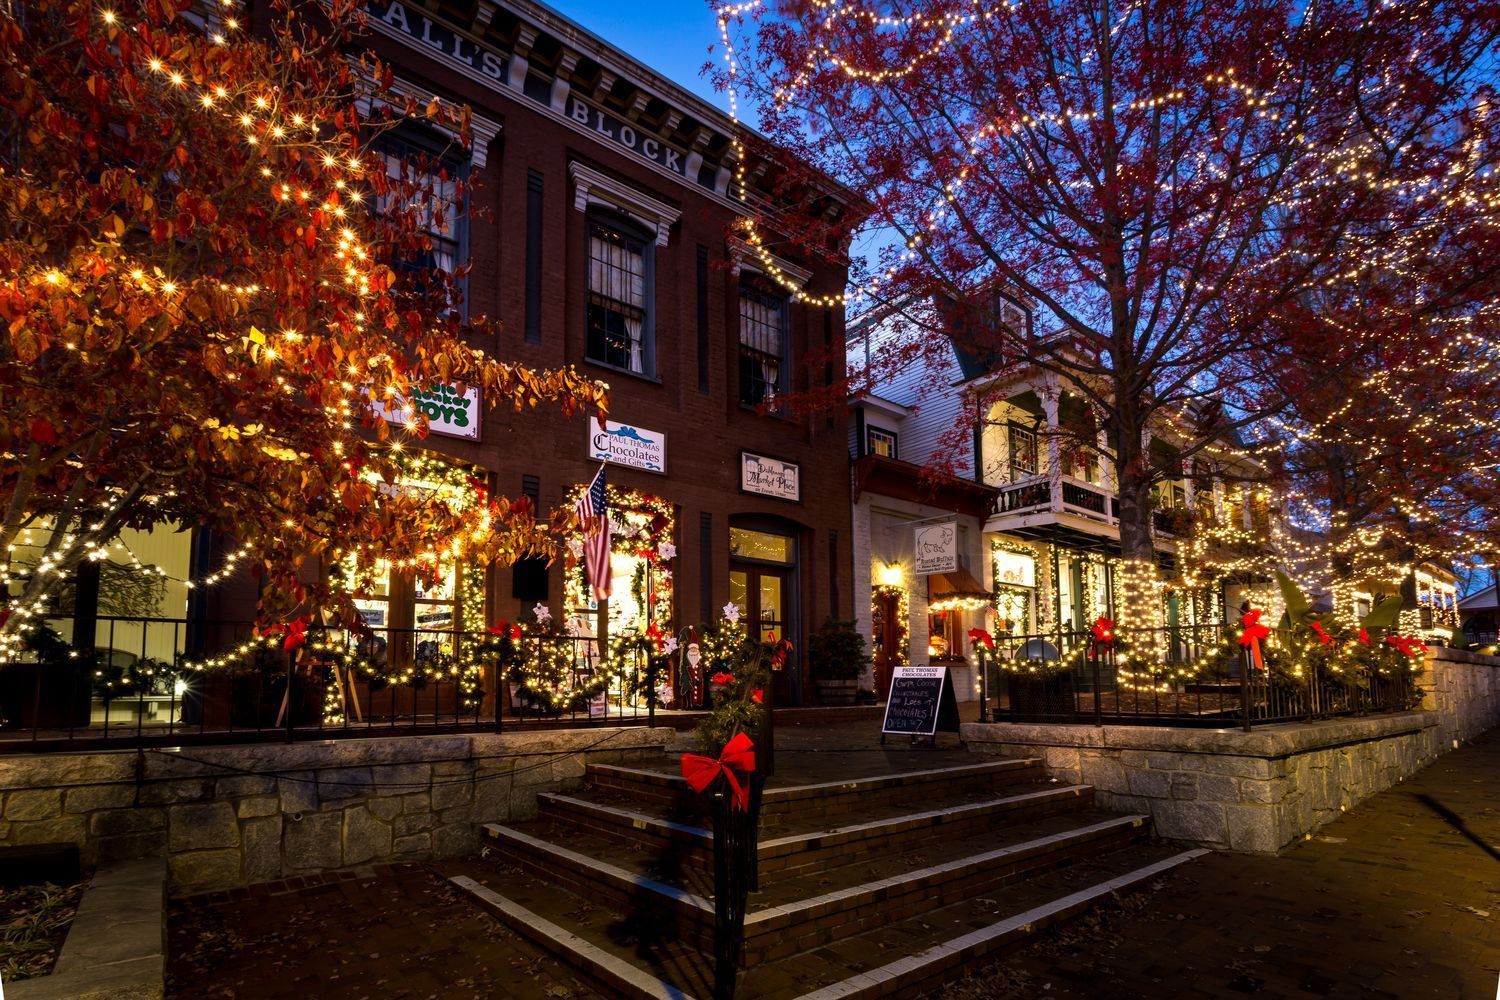 Best Southern Towns To Visit At Christmas 2020 These 8 Small Georgia Towns Do Christmas Right | Official Georgia